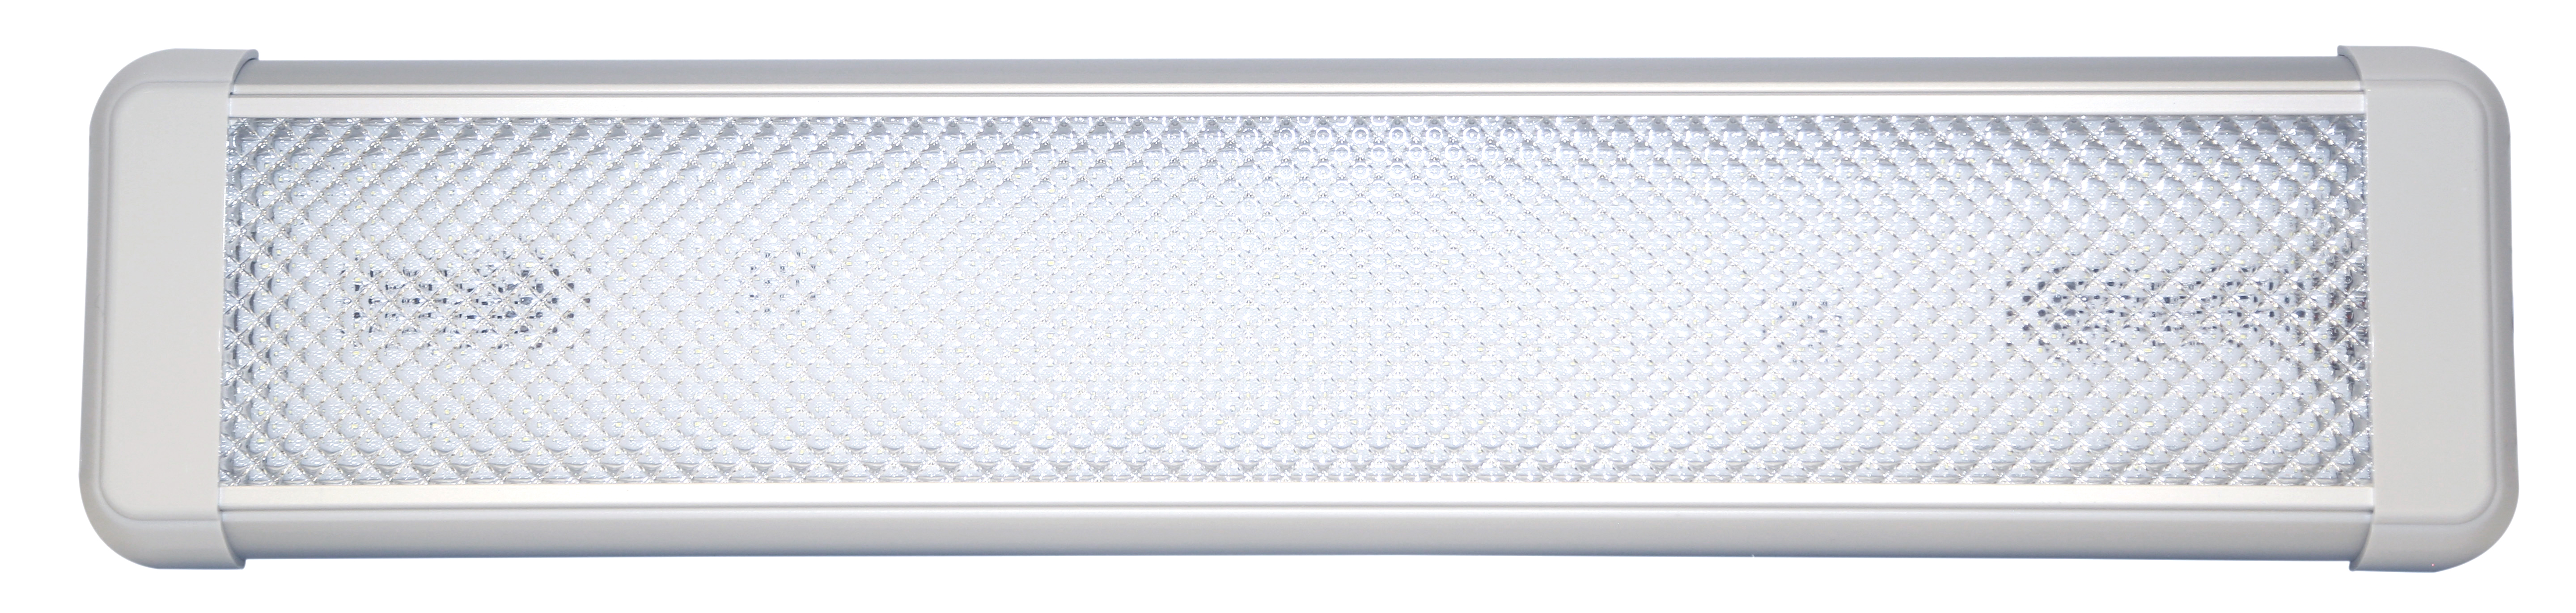 LED Beleuchtung Serie 600 Länge 460mm